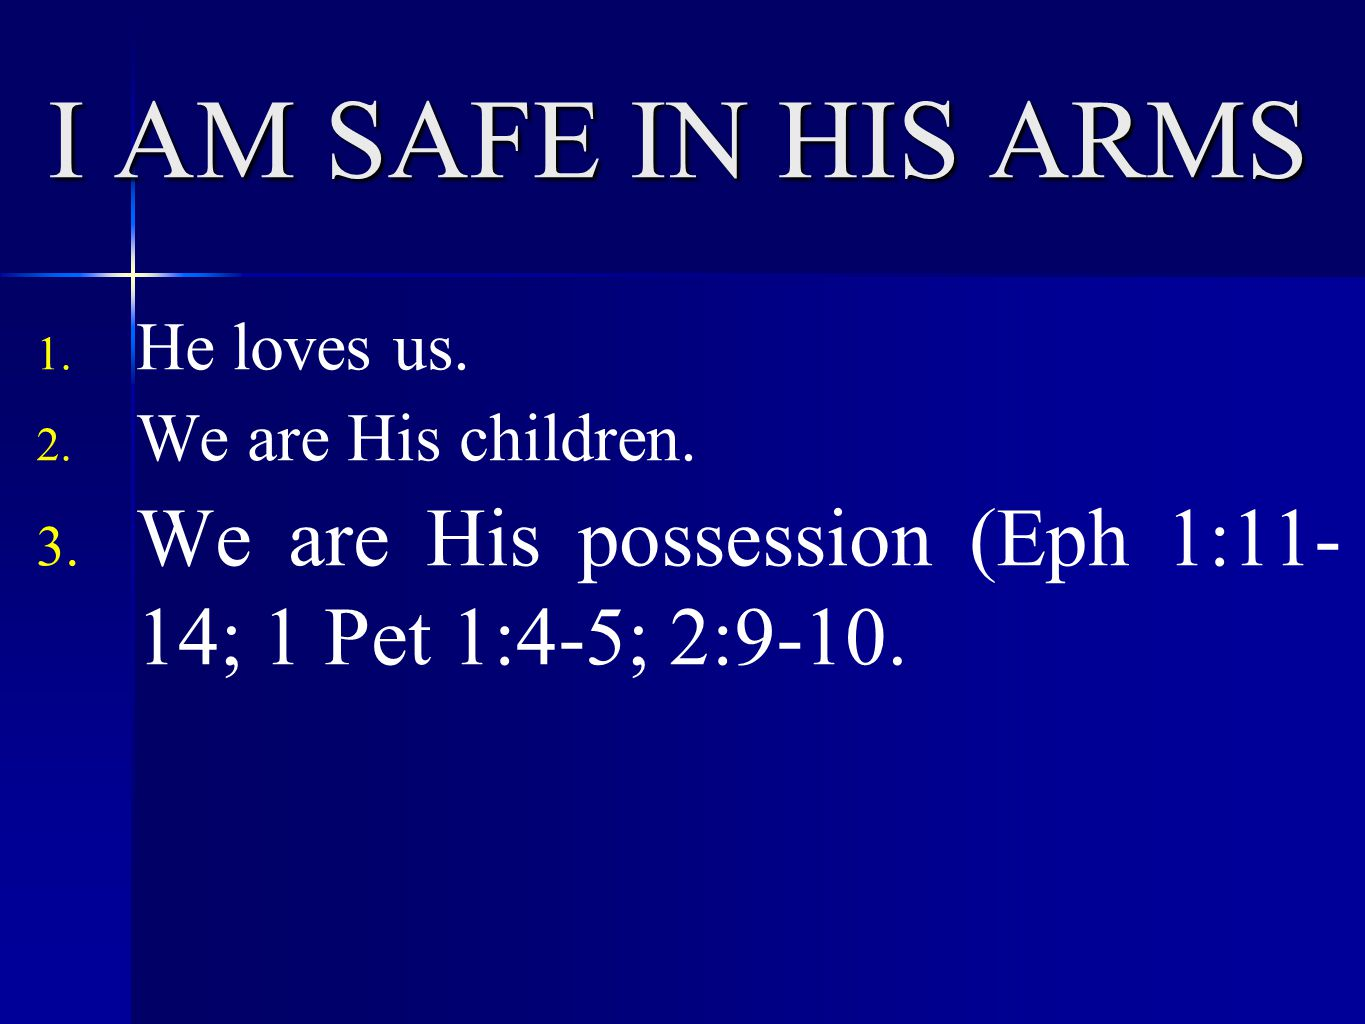 I AM SAFE IN HIS ARMS 1. He loves us. 2. We are His children.